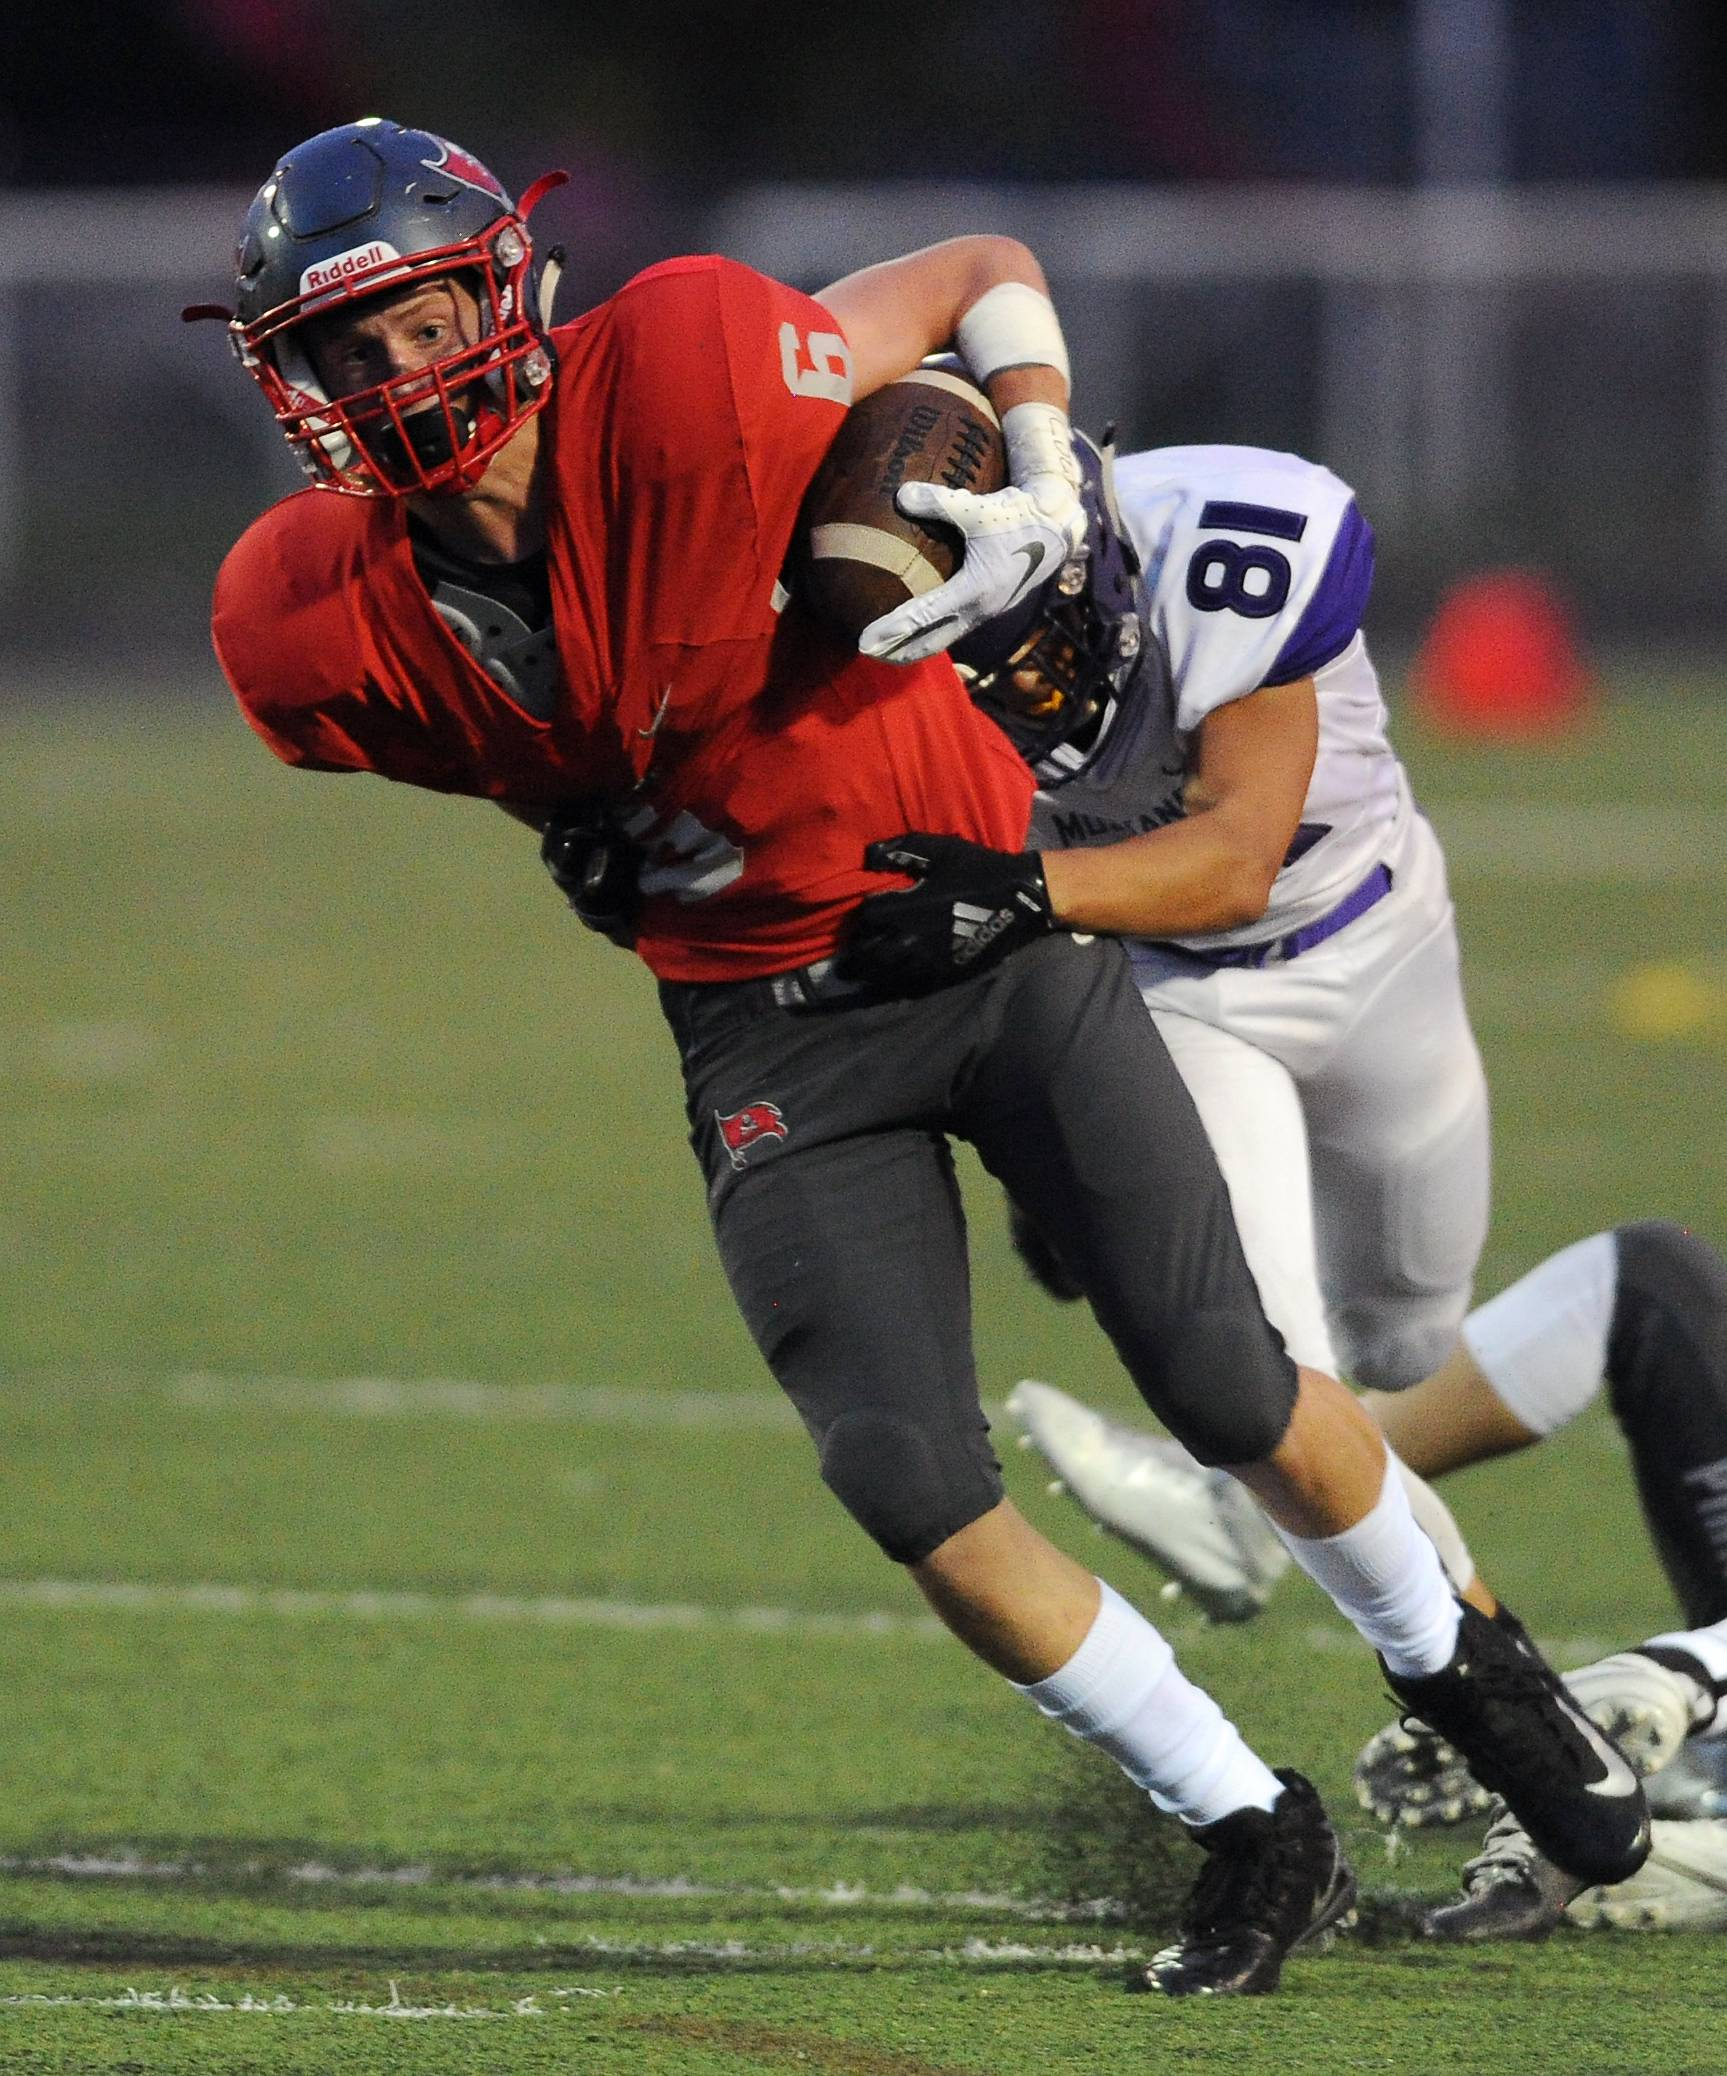 Palatine's Jake Gronwick runs for yardage and is stopped by Rolling Meadows' TJ Williams in the first quarter Friday.